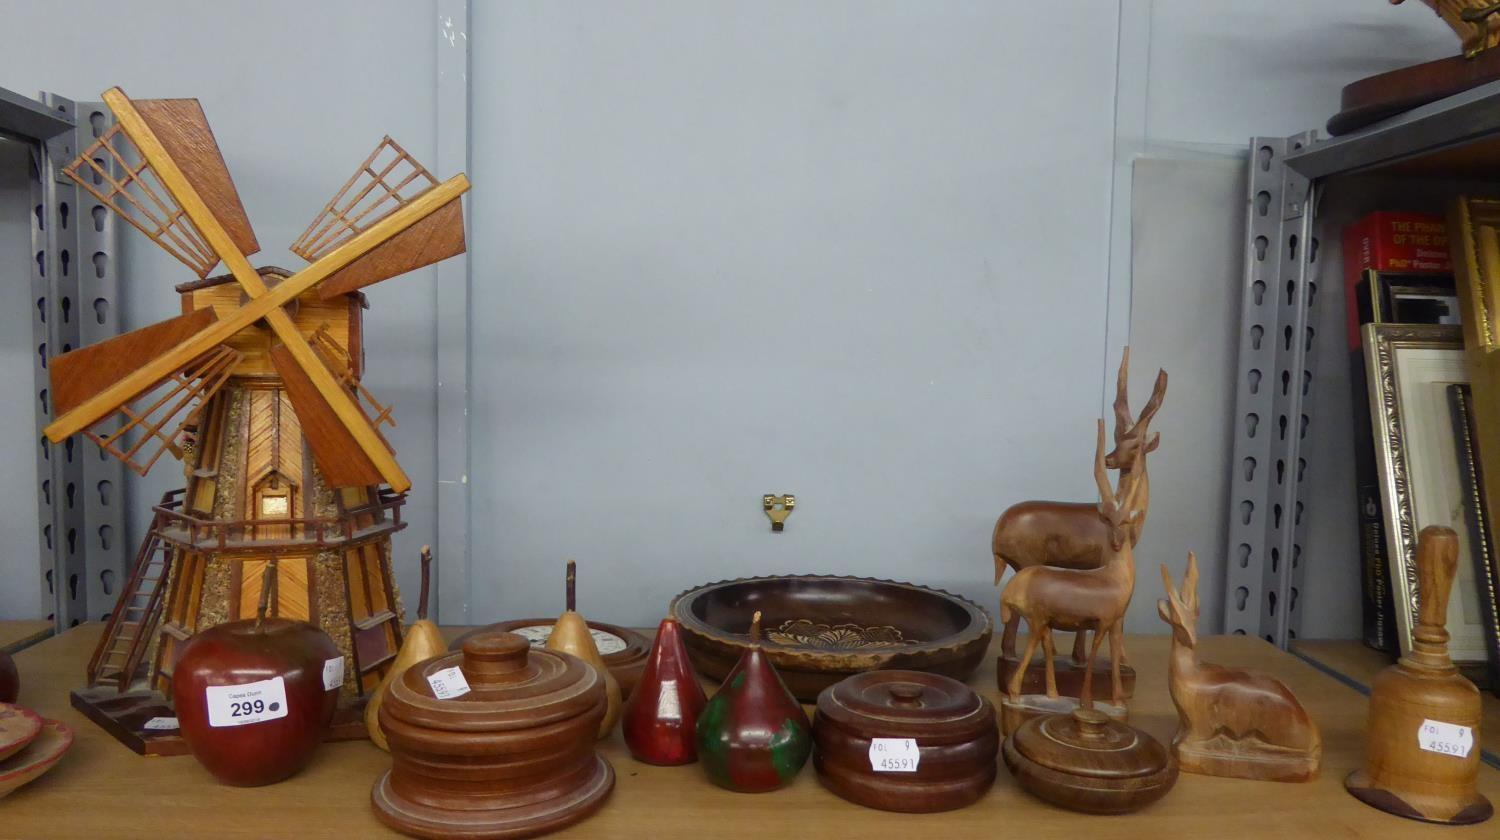 Lot 314 - MUSICAL WINDMILL MADE WITH MATCHSTICKS IN WORKING ORDER, FIVE WOODEN PEAR ORNAMENTS, THREE WOODEN